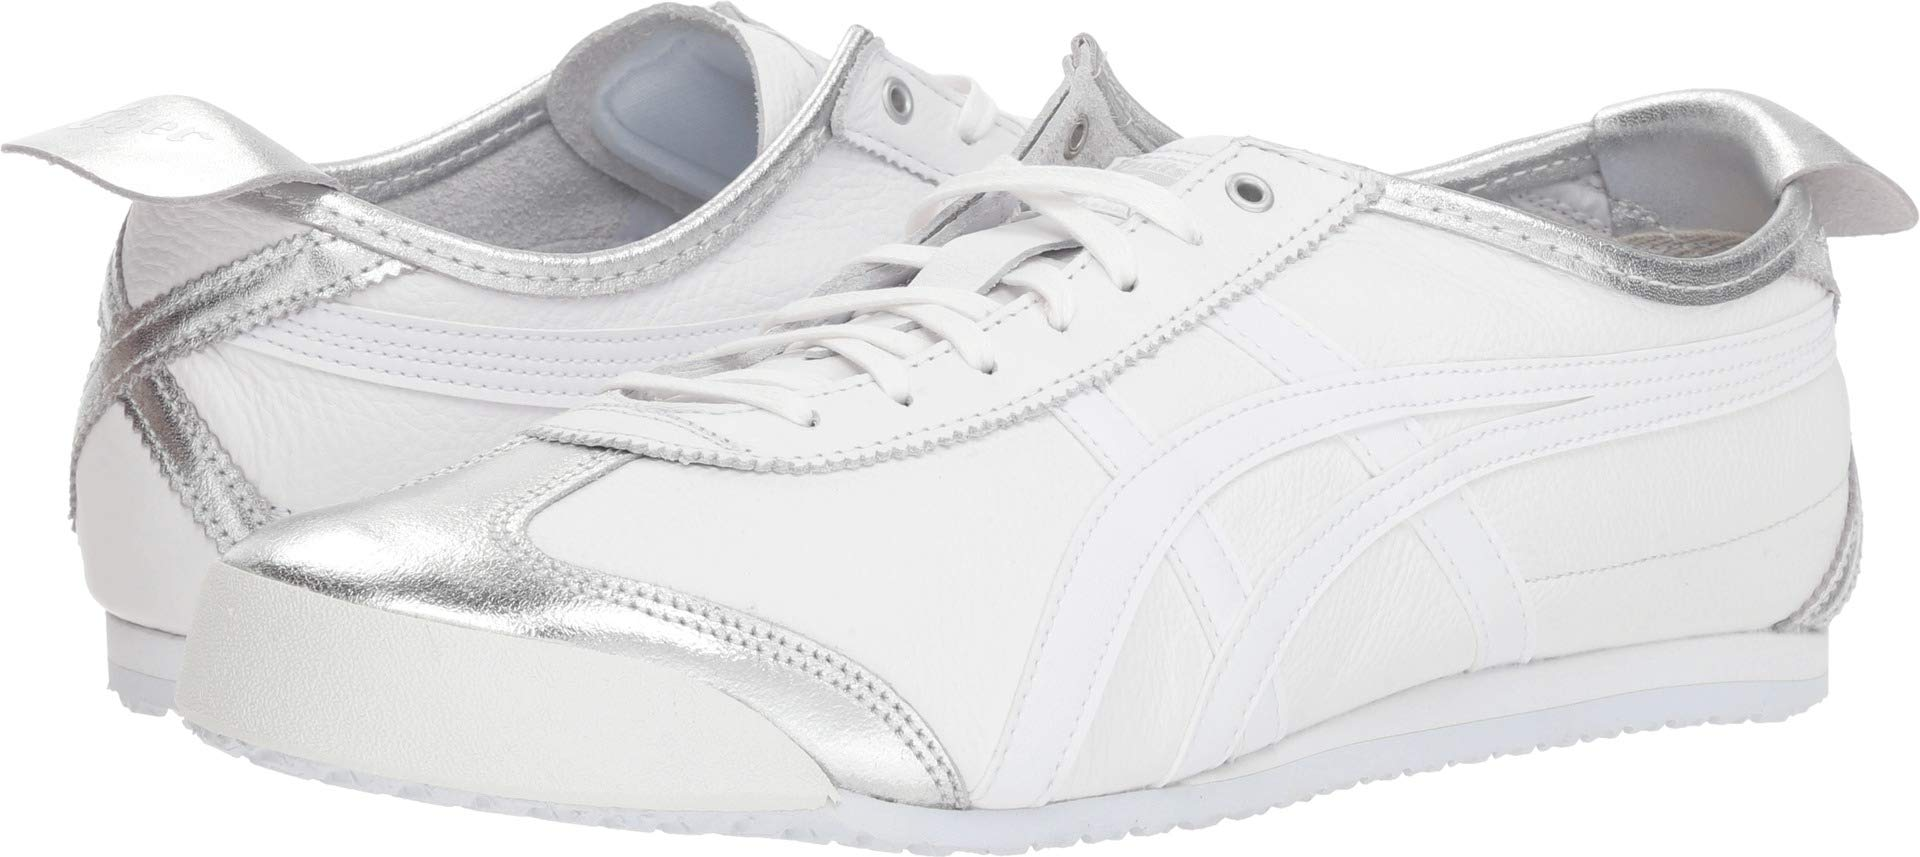 designer fashion decdc 0d2d2 Onitsuka Tiger by Asics Unisex Mexico 66 Silver/White 8 Women / 6.5 Men M  US Medium